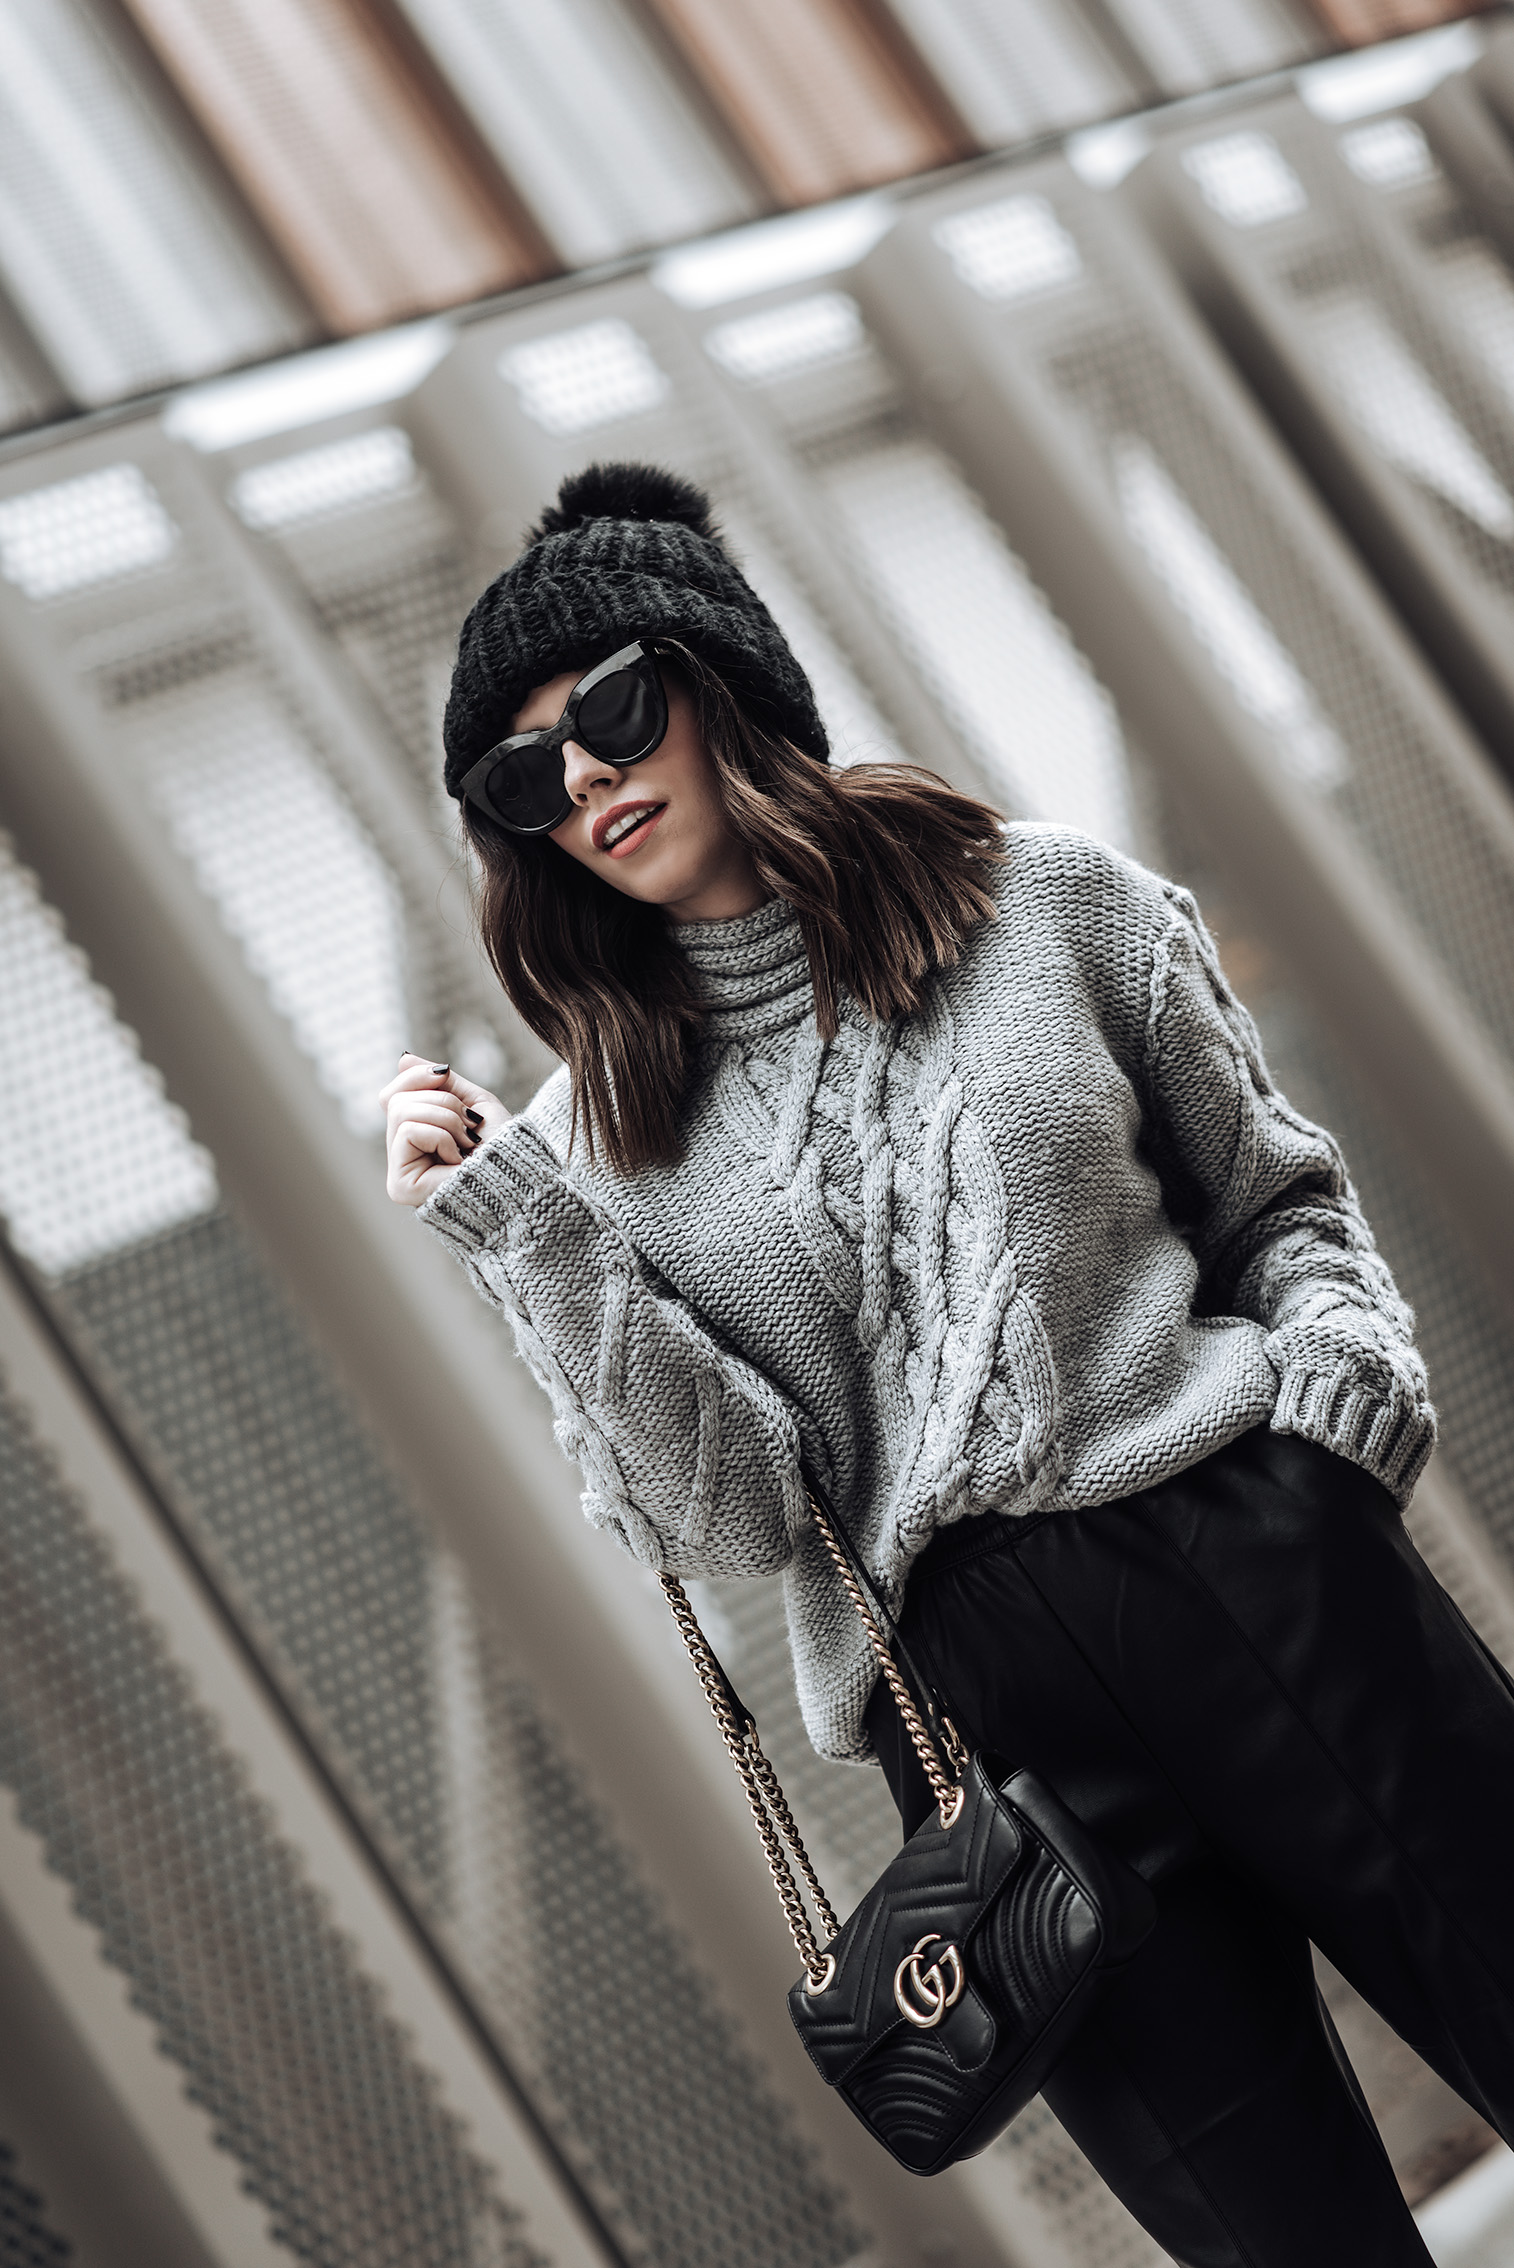 Tiffany Jais fashion and lifestyle blogger of Flaunt and Center | Houston fashion blogger | Leather joggers | Streetstyle blog | Grey chunky knit sweater (similar) | Leather pant | Mini GG Marmot bag | Oversized chunky knit beanie (sold out similar here) #streetstyle #blog #chunkysweater